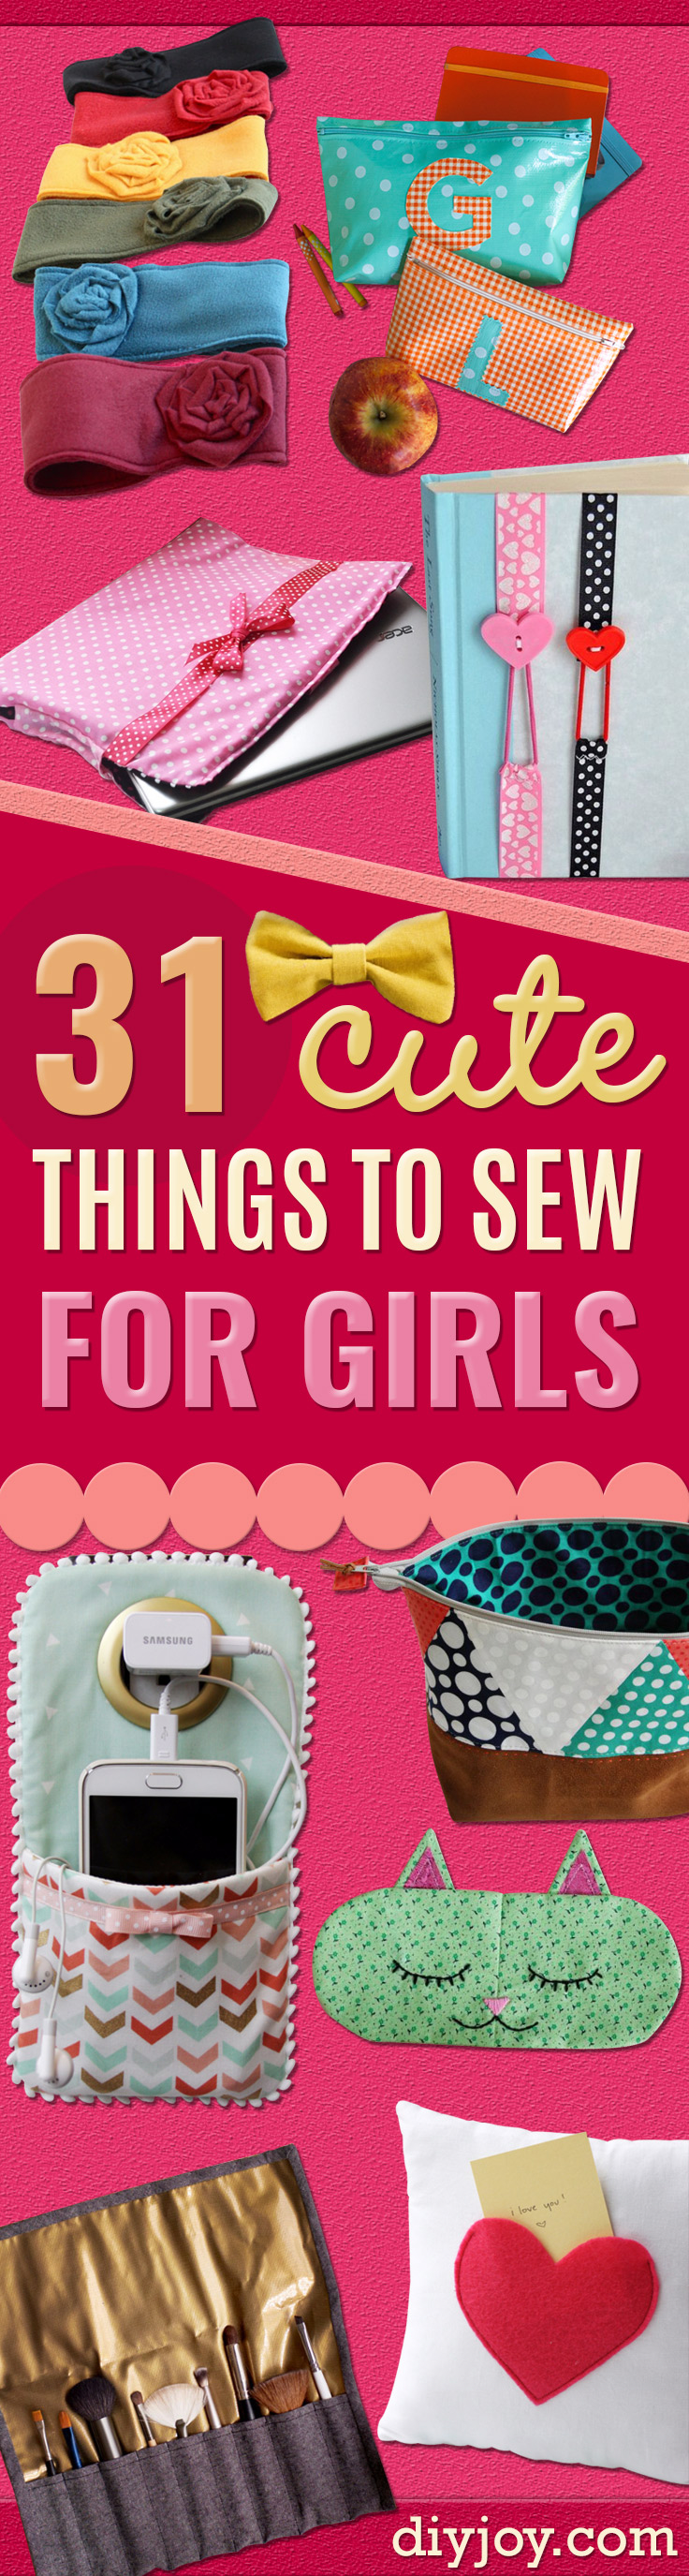 Best Sewing Projects to Make For Girls - Creative Sewing Tutorials for Baby Kids and Teens - Free Patterns and Step by Step Tutorials for Dresses, Blouses, Shirts, Pants, Hats and Bags #sewing #sewingprojects